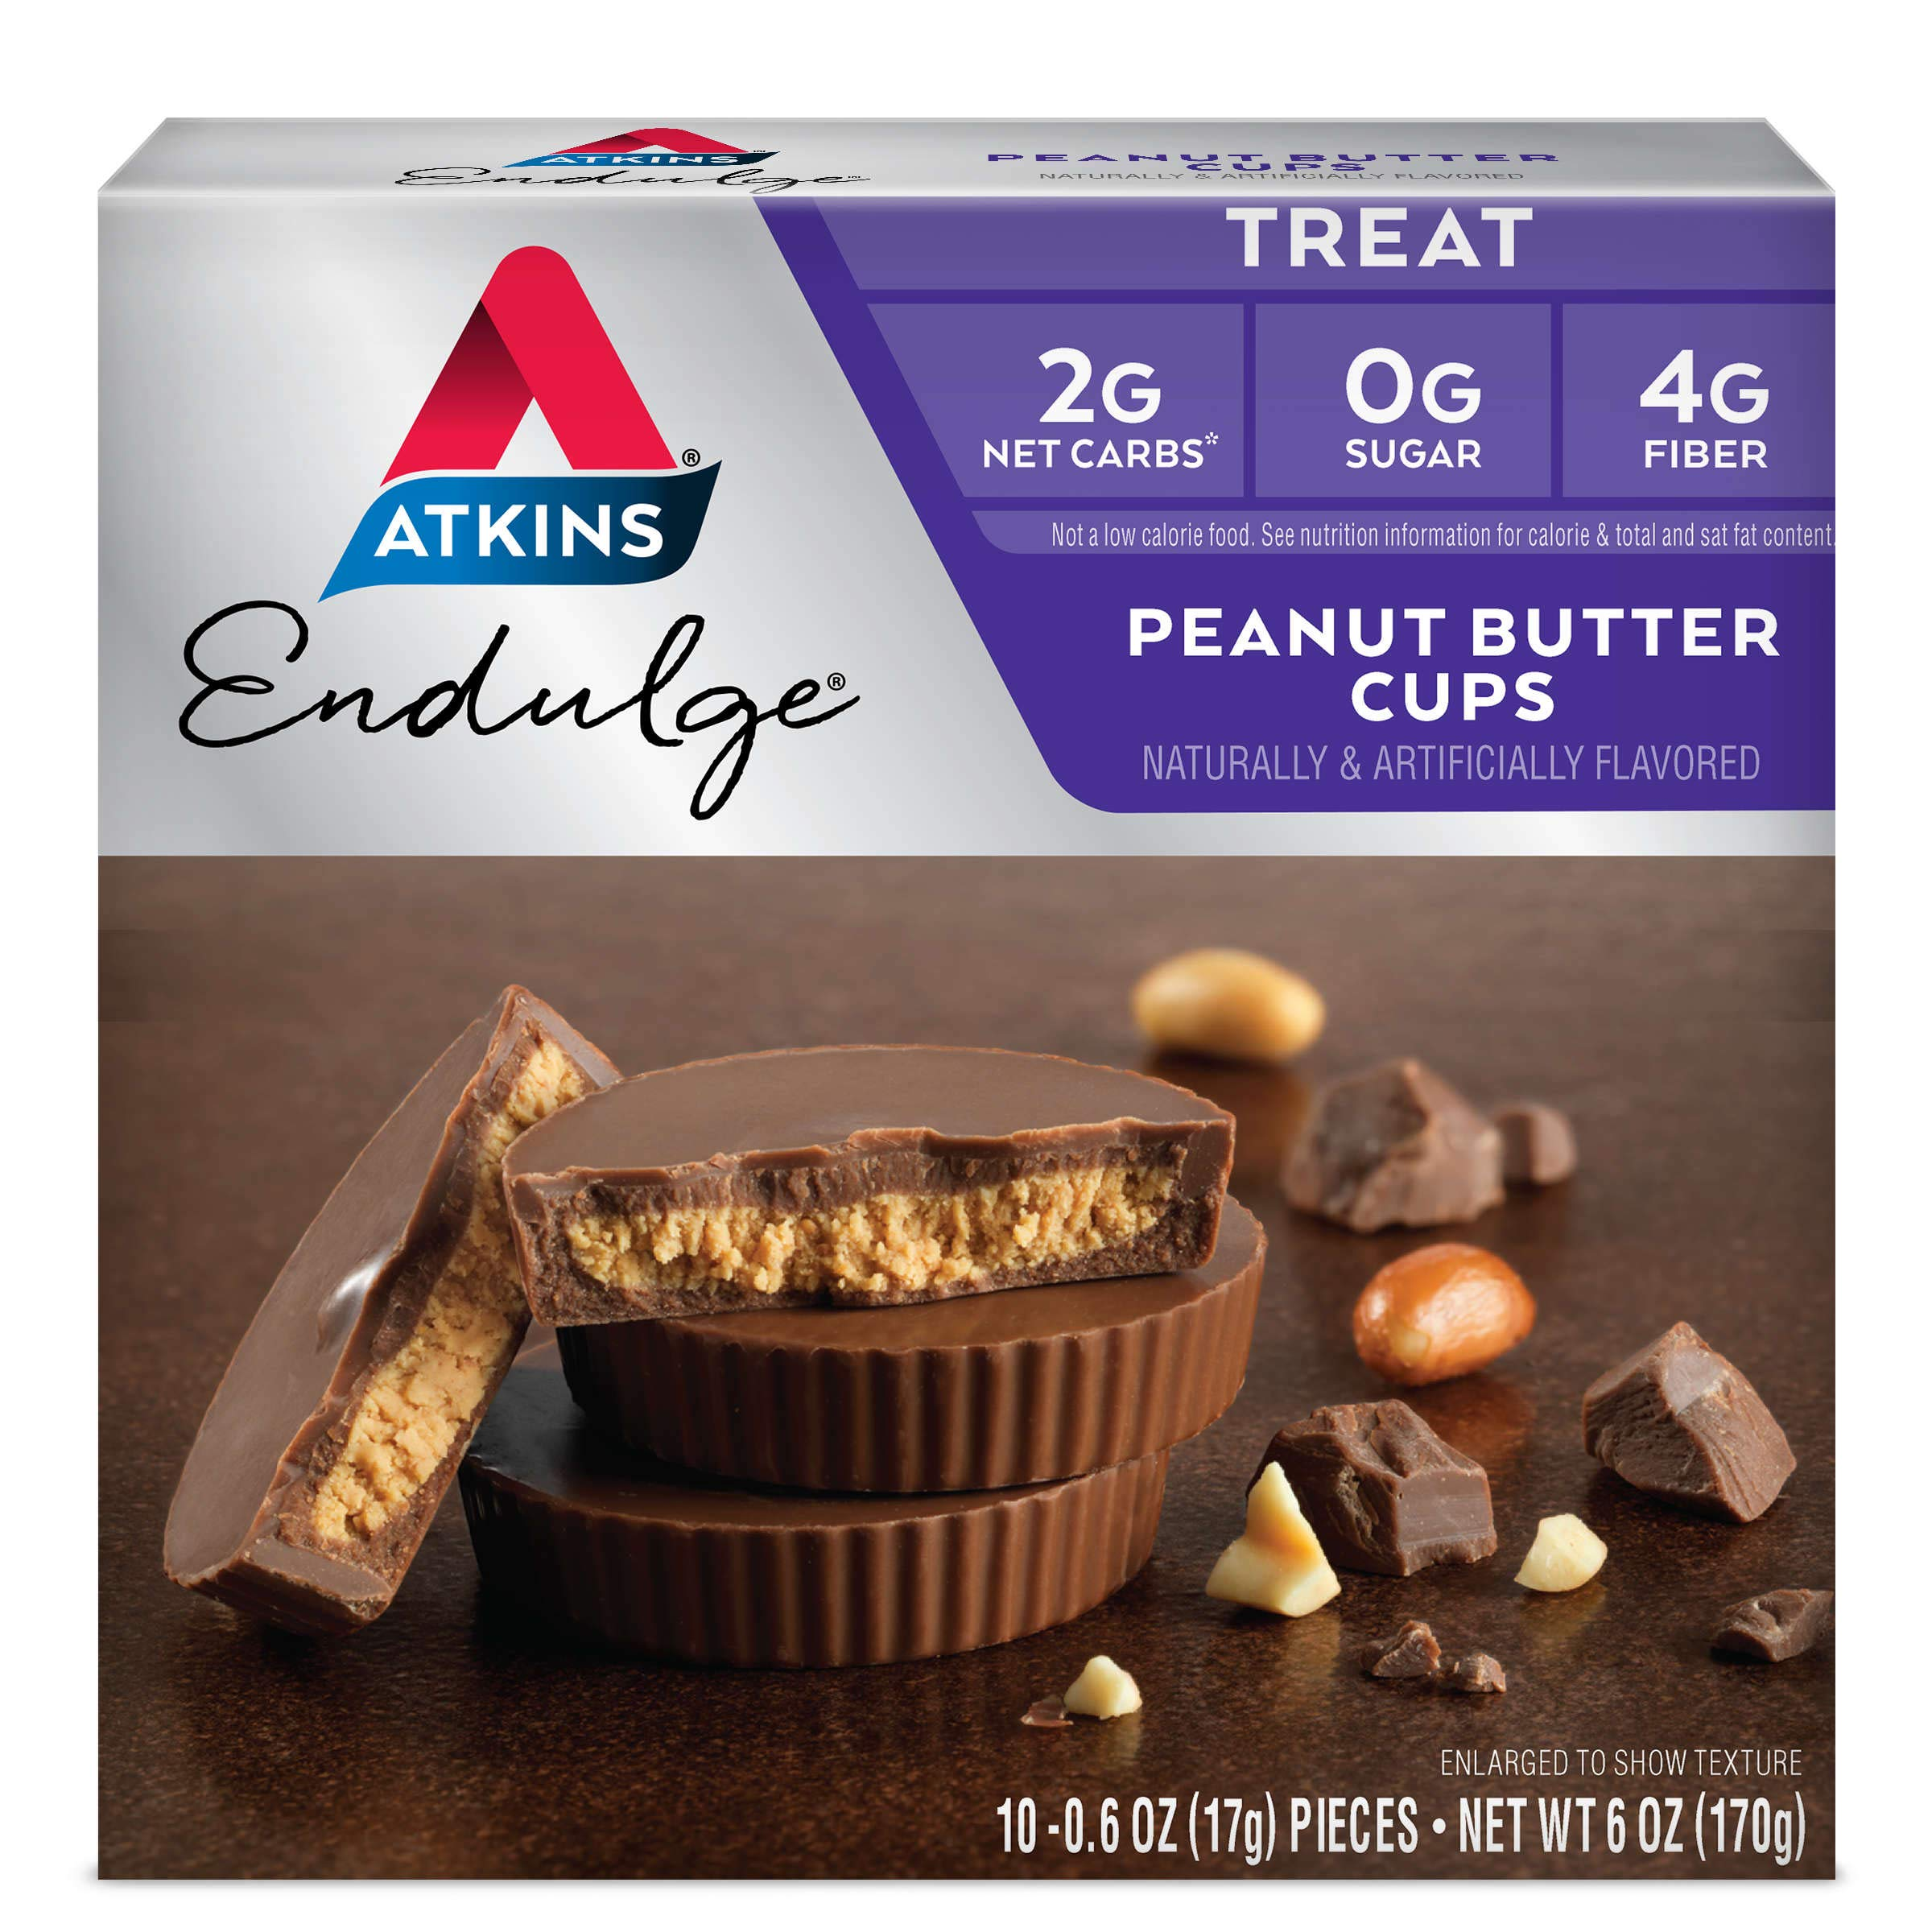 Atkins Endulge Treat, Peanut Butter Cups, Keto Friendly, 40 Count by Atkins (Image #2)